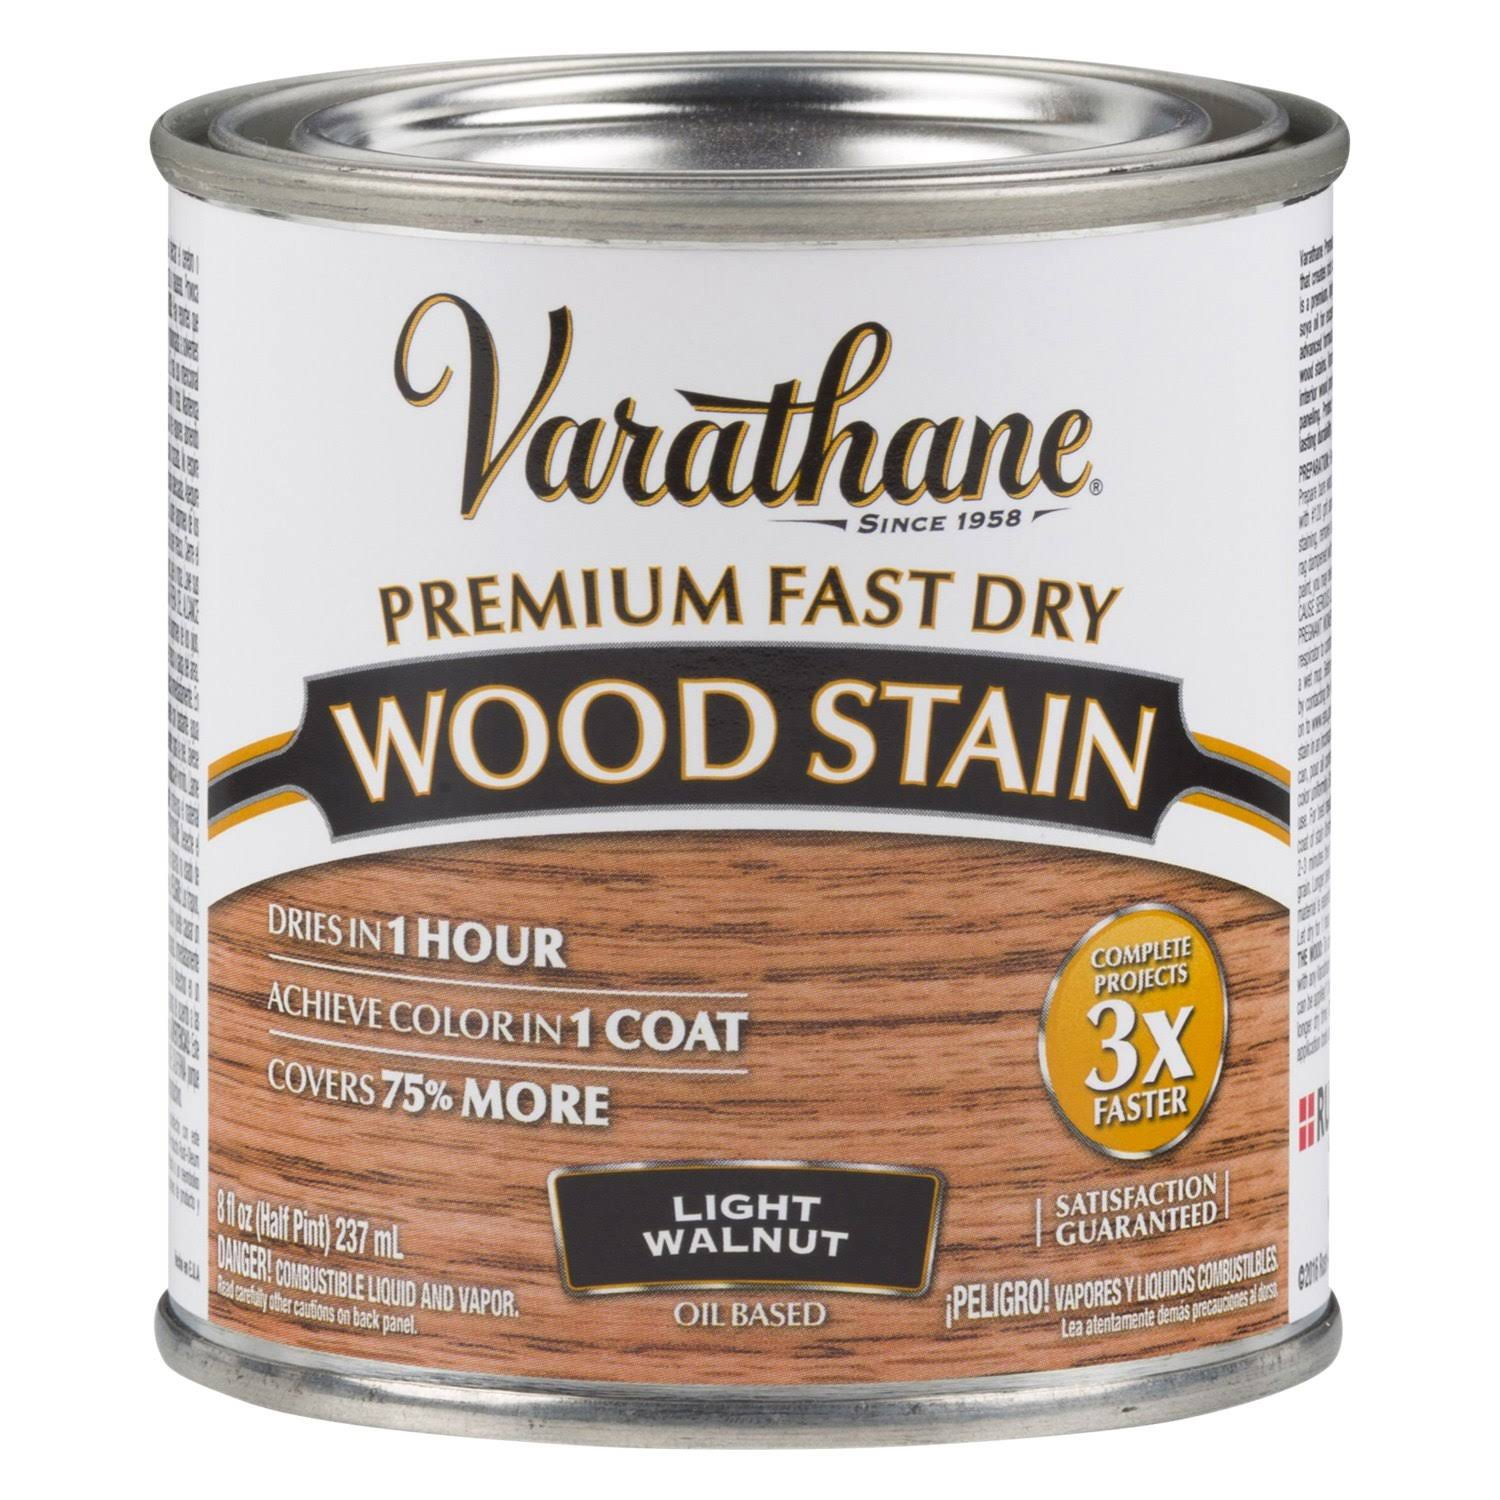 Varathane 262034 Fast Dry Oil Wood Stain - Half Pint, Light Walnut